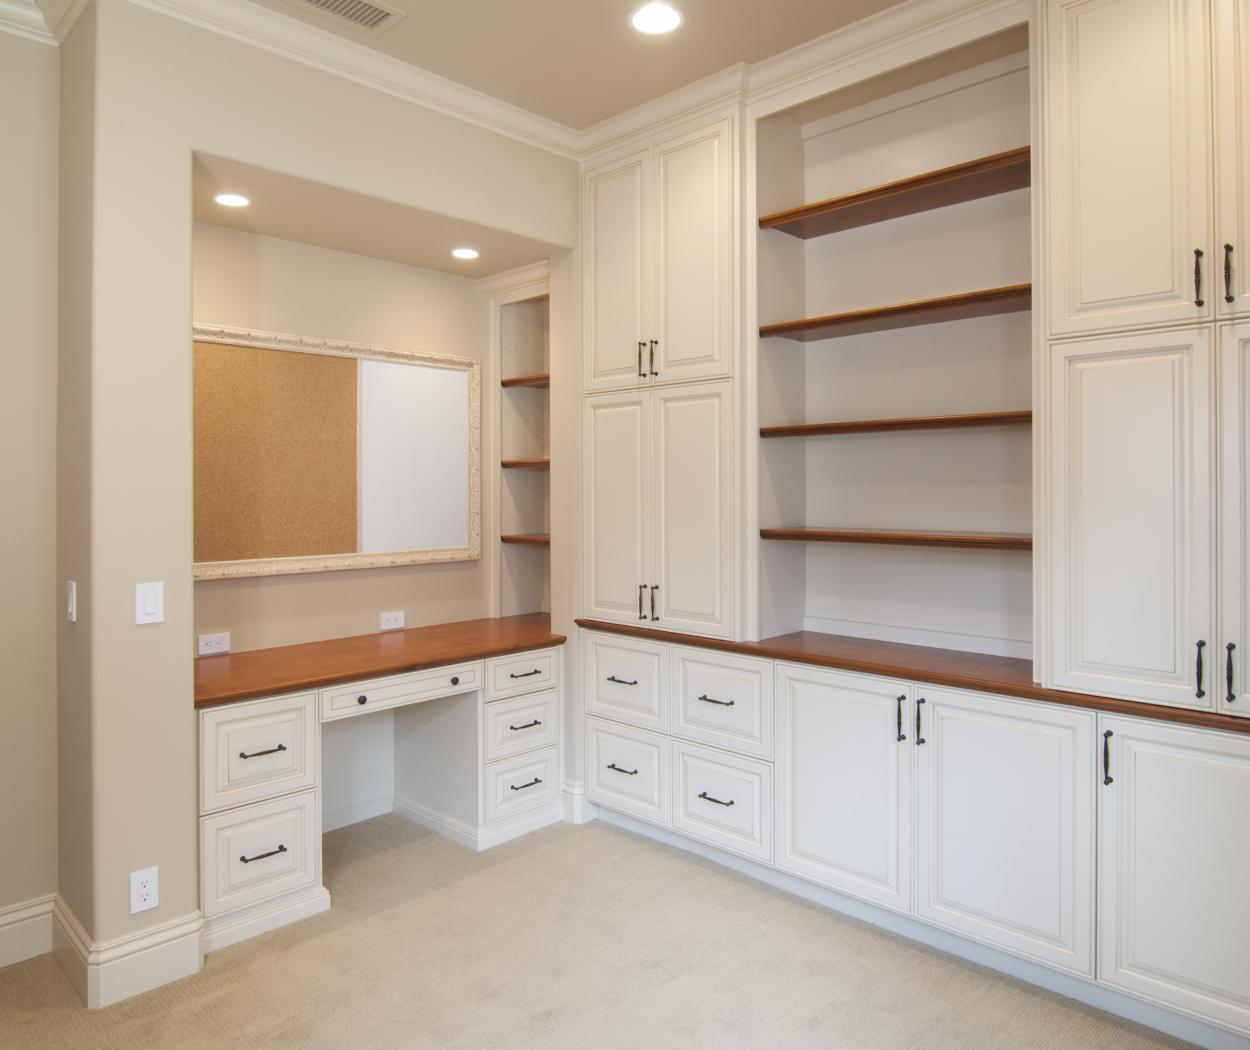 Beautiful Off White Office Built-Ins with Wood Tops, Open Wood Shelves and Oil Rubbed Bronze Hardware